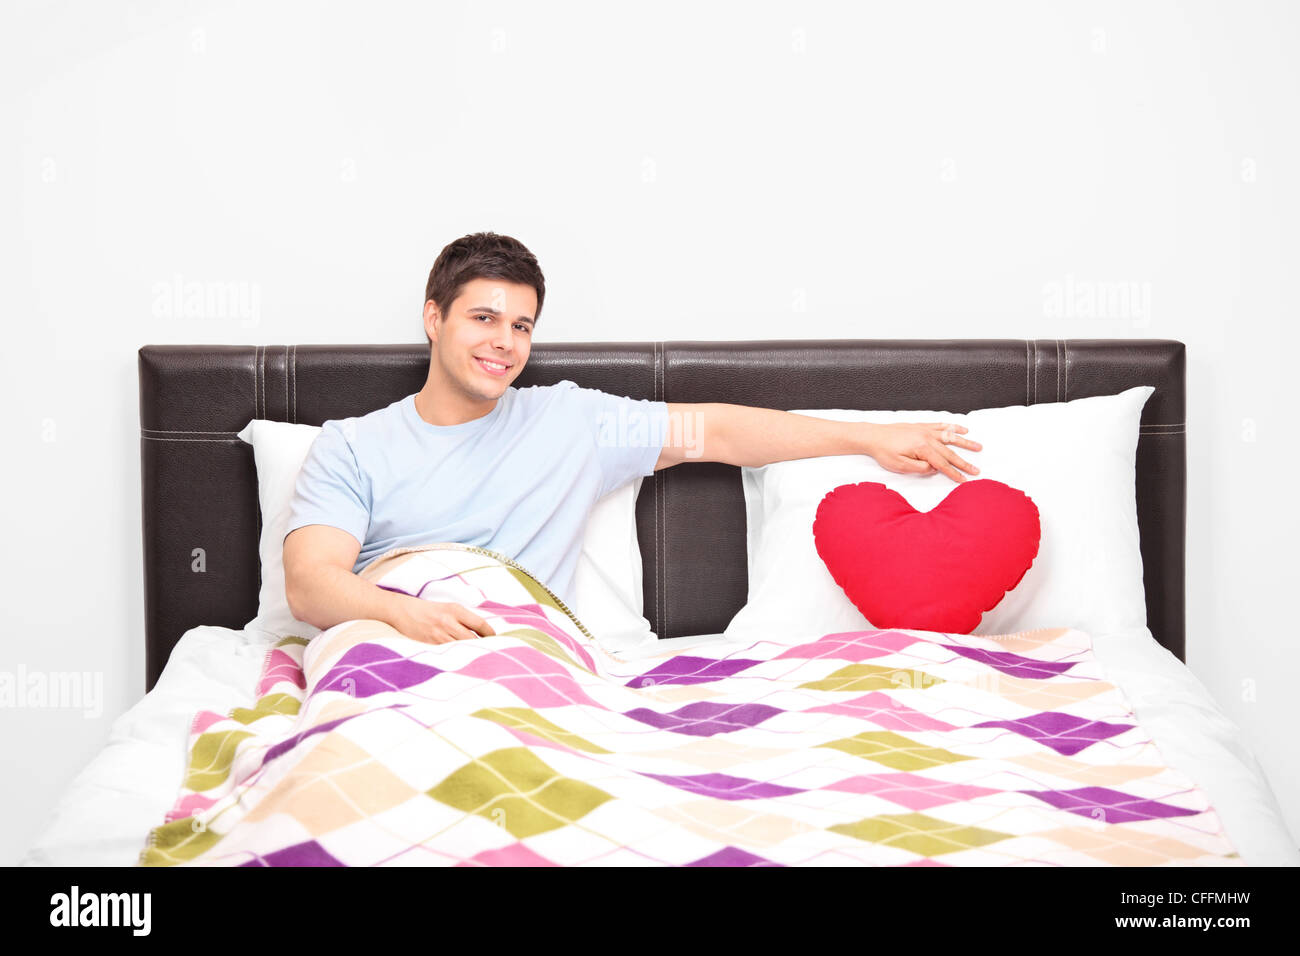 Man Shaped Pillow Young Man Resting On A Bed And A Heart Shaped Pillow Stock Photo